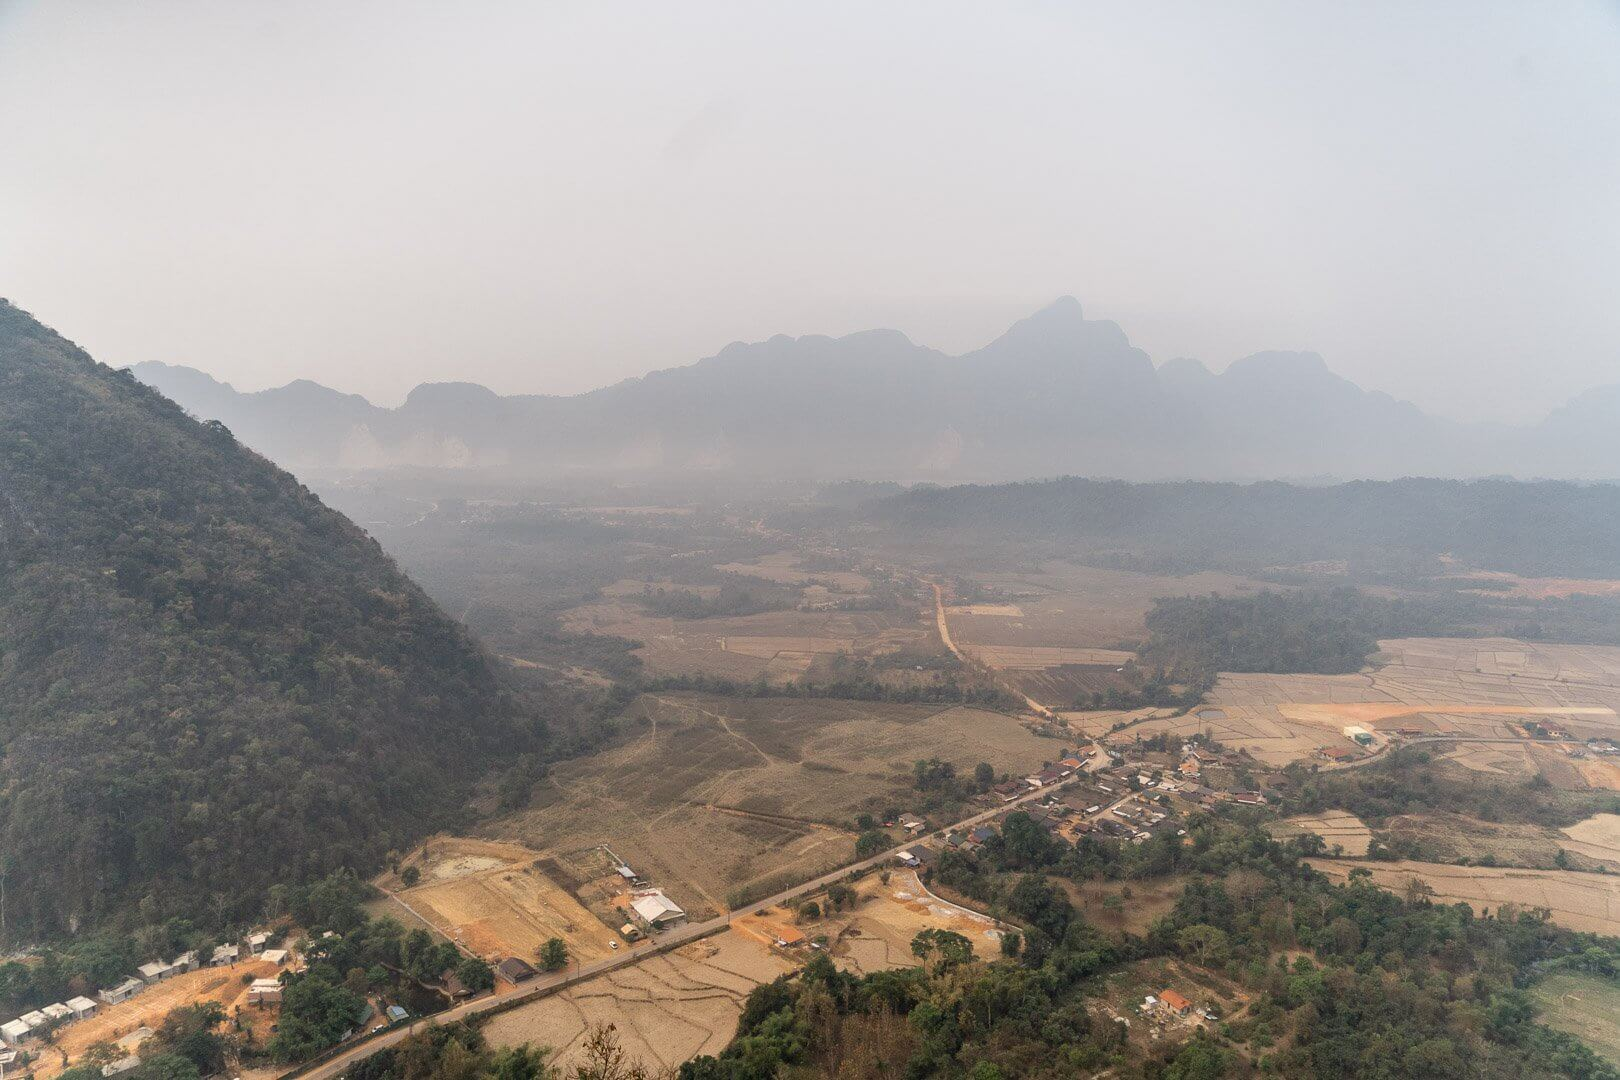 Pha Ngern mountain viewpoint in Vang Vieng, Laos